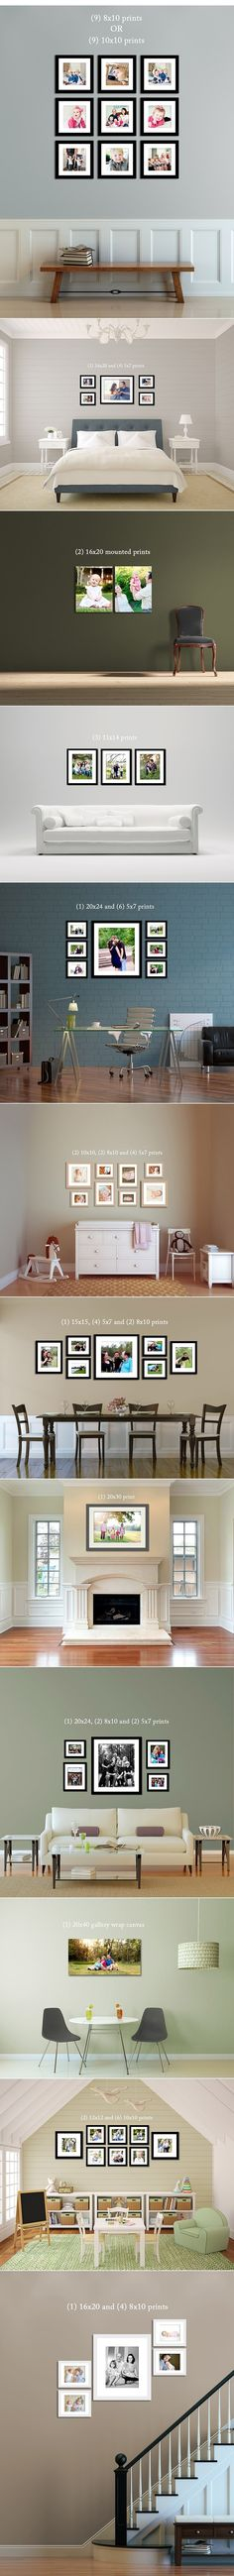 Picture hanging ideas - good horizontal options